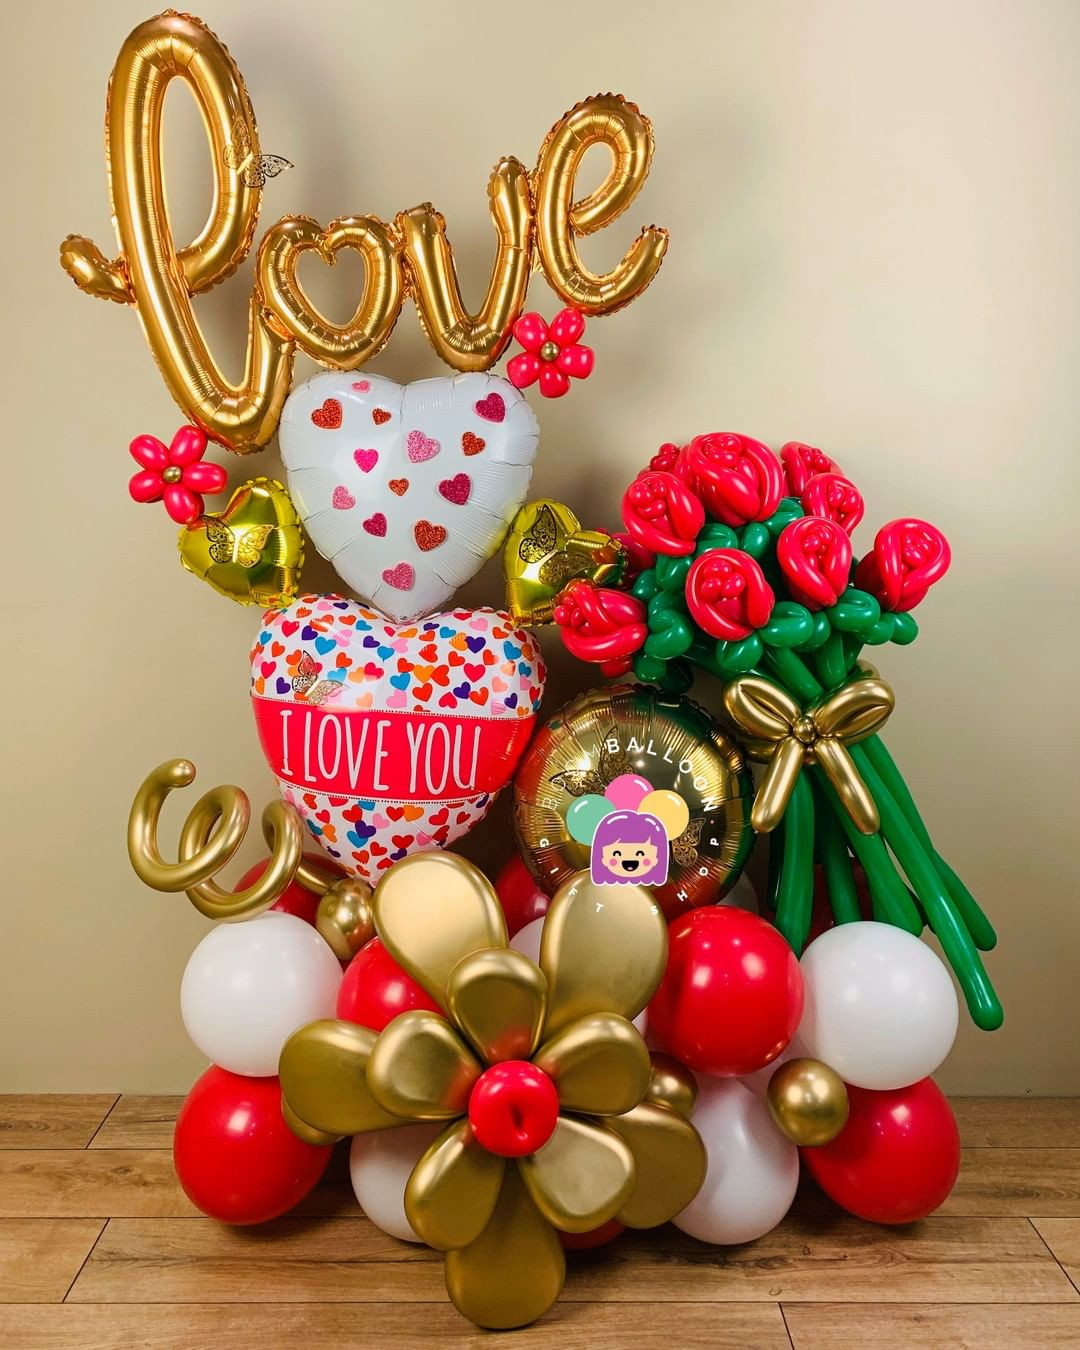 35 Valentine's Day Balloons Ideas You Haven't Tried Yet,valentine party decorations,love balloons,valentines hanging decorations